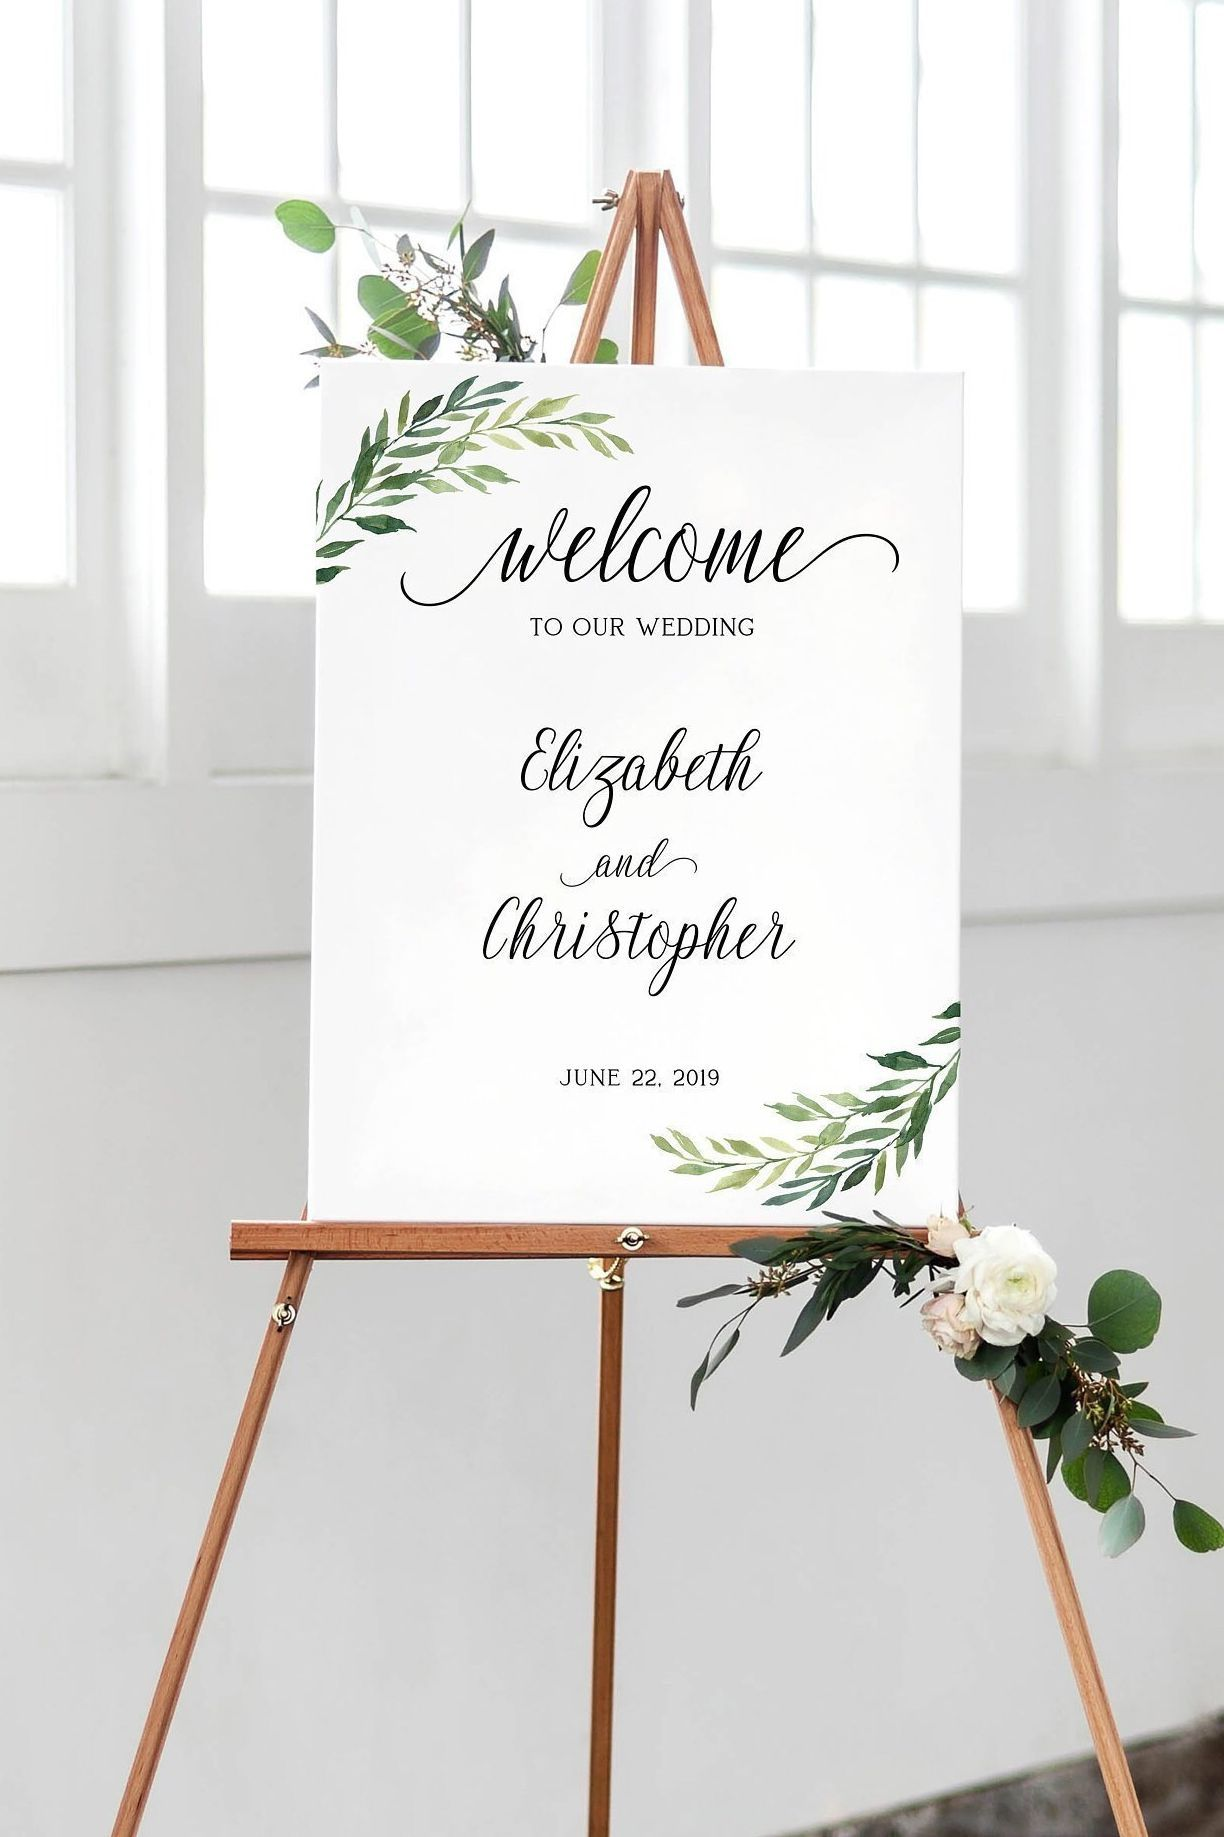 008 Fascinating Wedding Welcome Sign Template Free Image Full